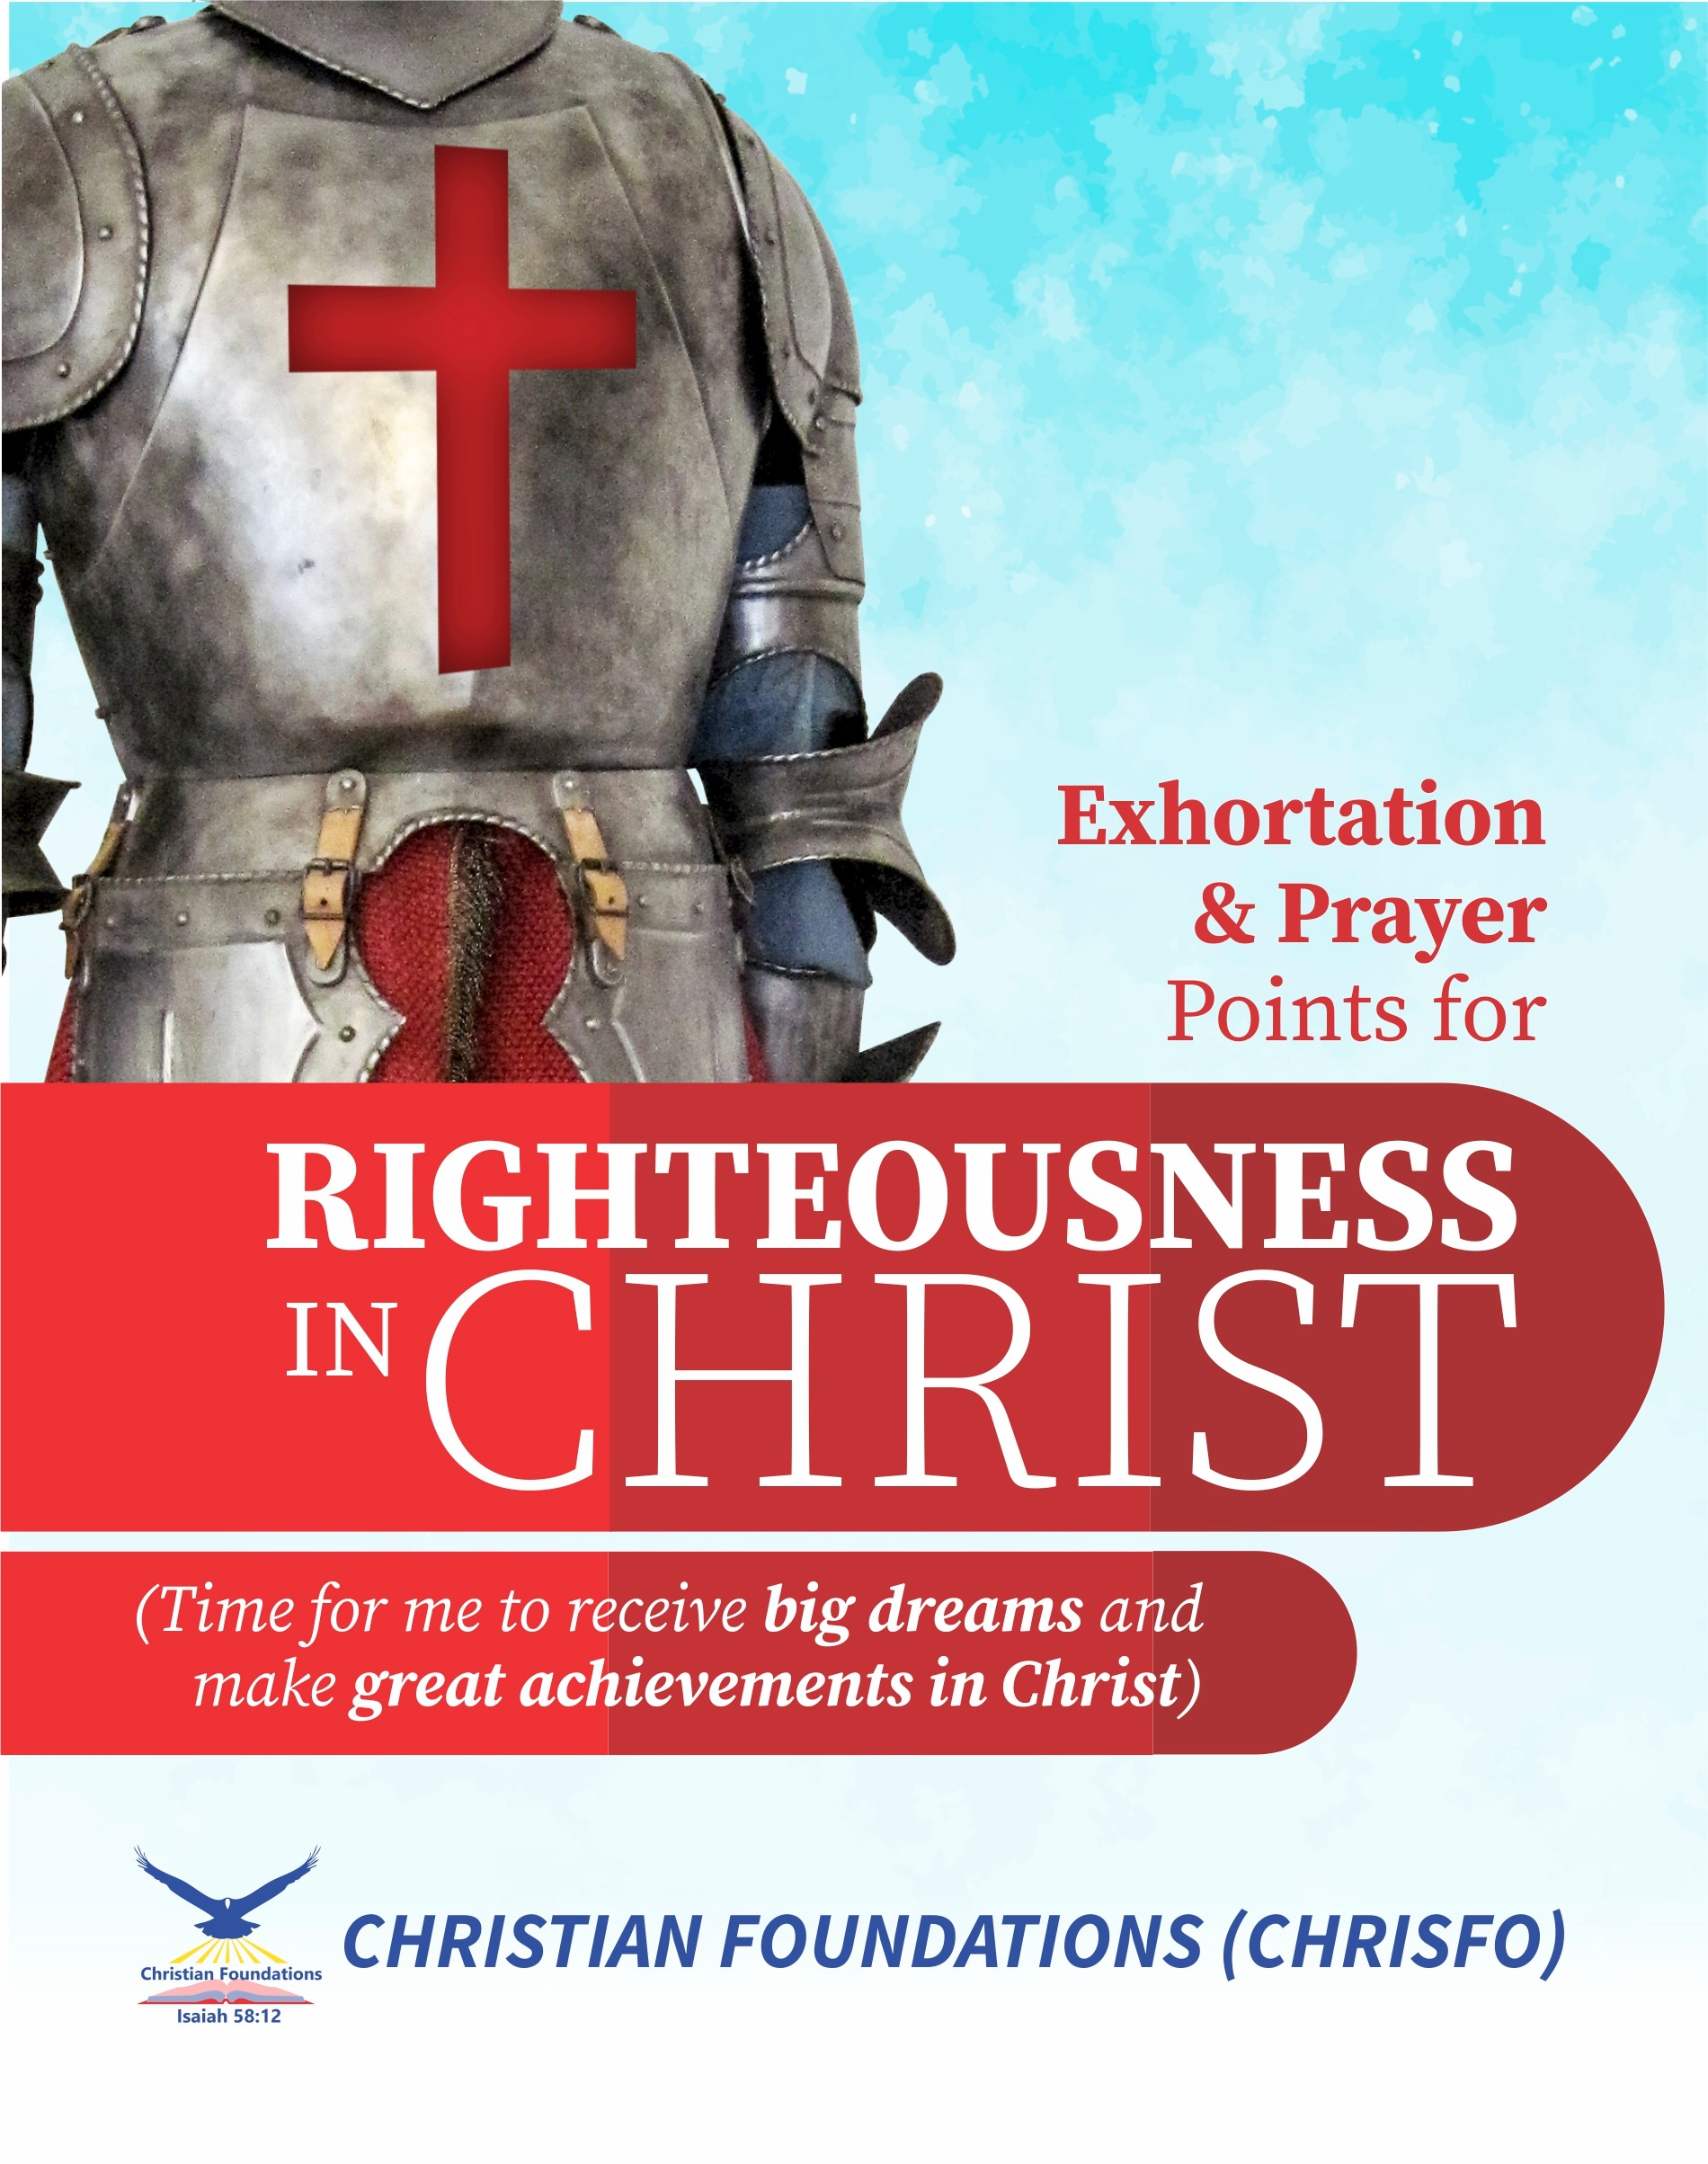 EXHORTATION AND PRAYERS for RIGHTEOUSNESS IN CHRIST